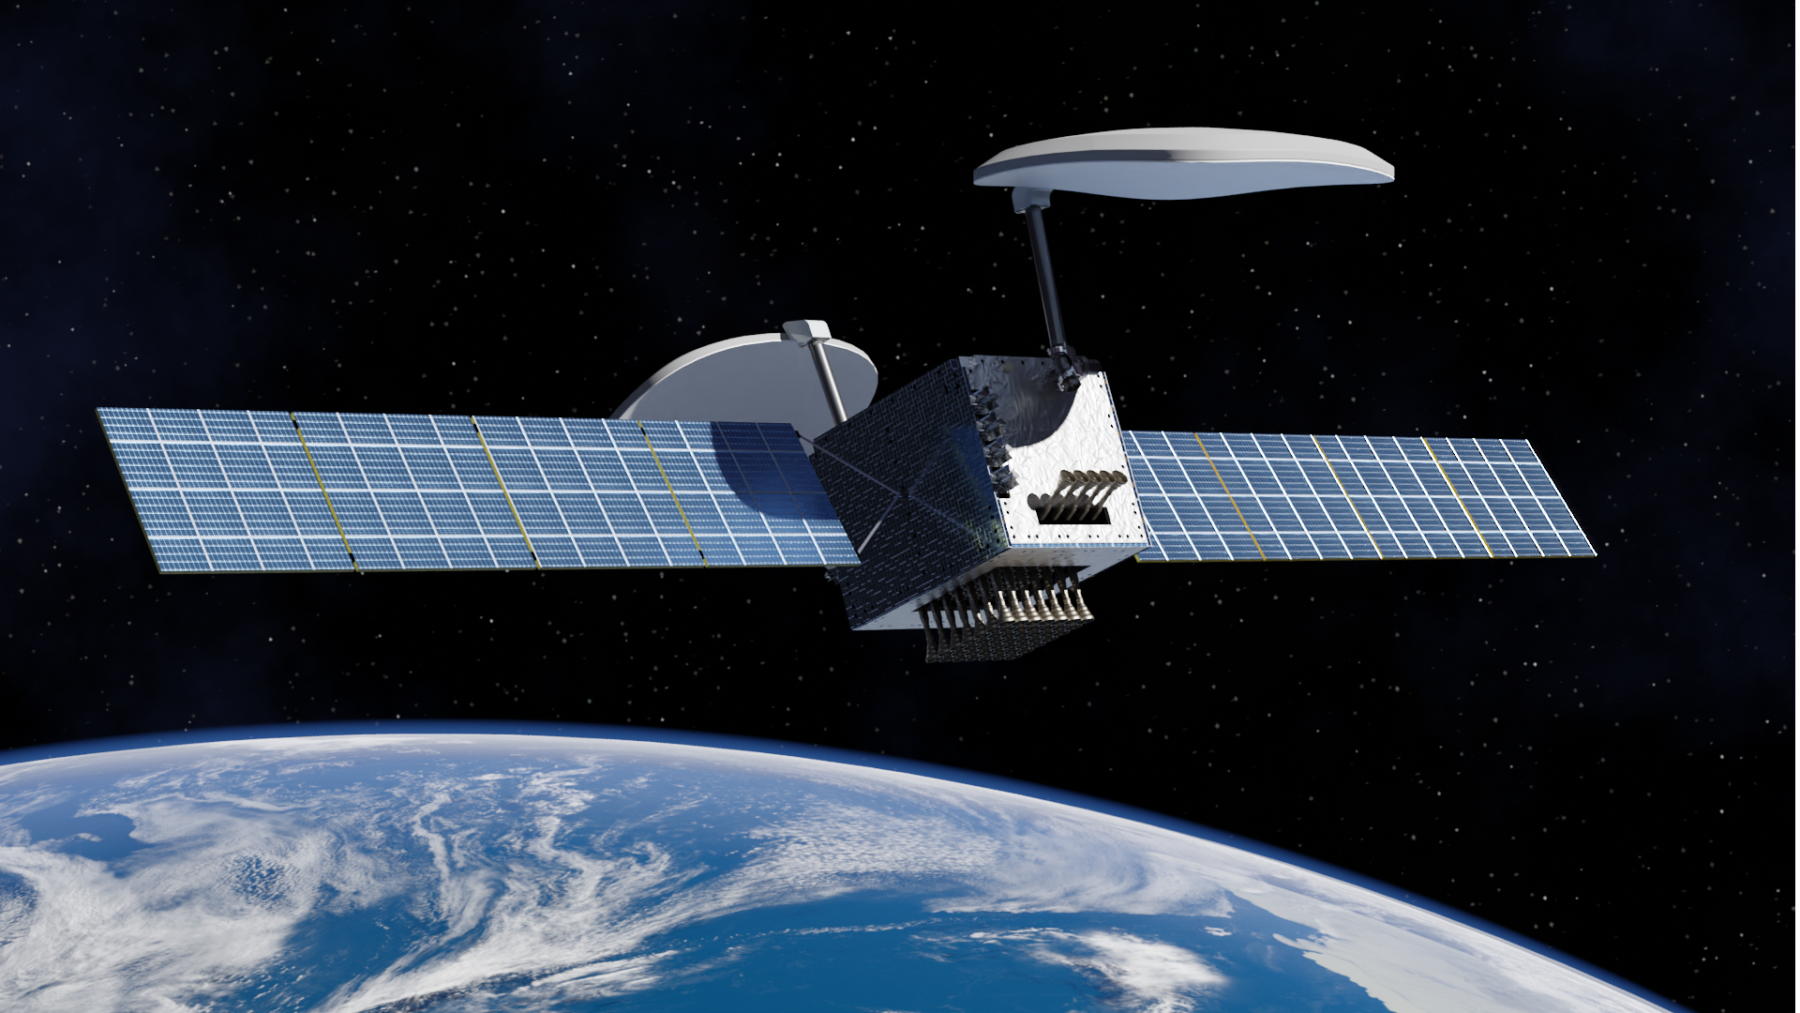 SWISSto12 and Saturn Satellite Networks collaborate to bring advanced small telecommunication satellites to GEO